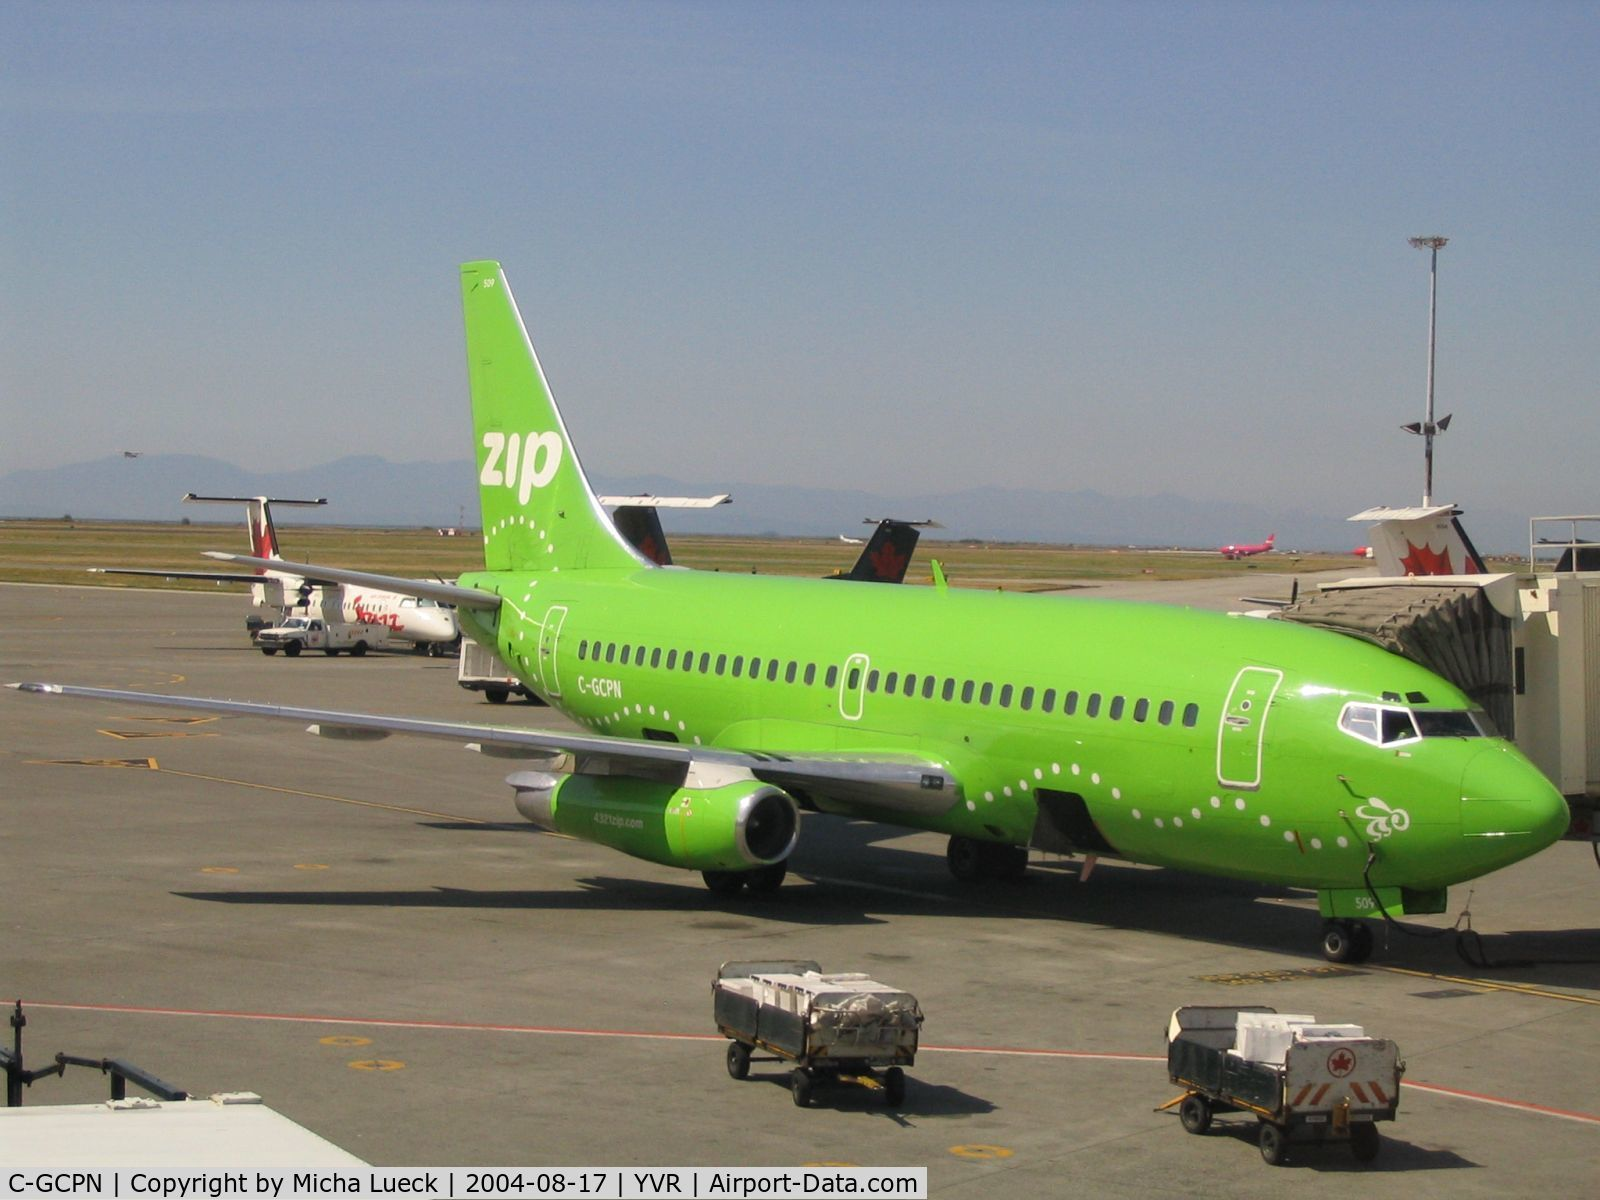 C-GCPN, 1979 Boeing 737-217 C/N 21717, The Green Bumble Bee of the West